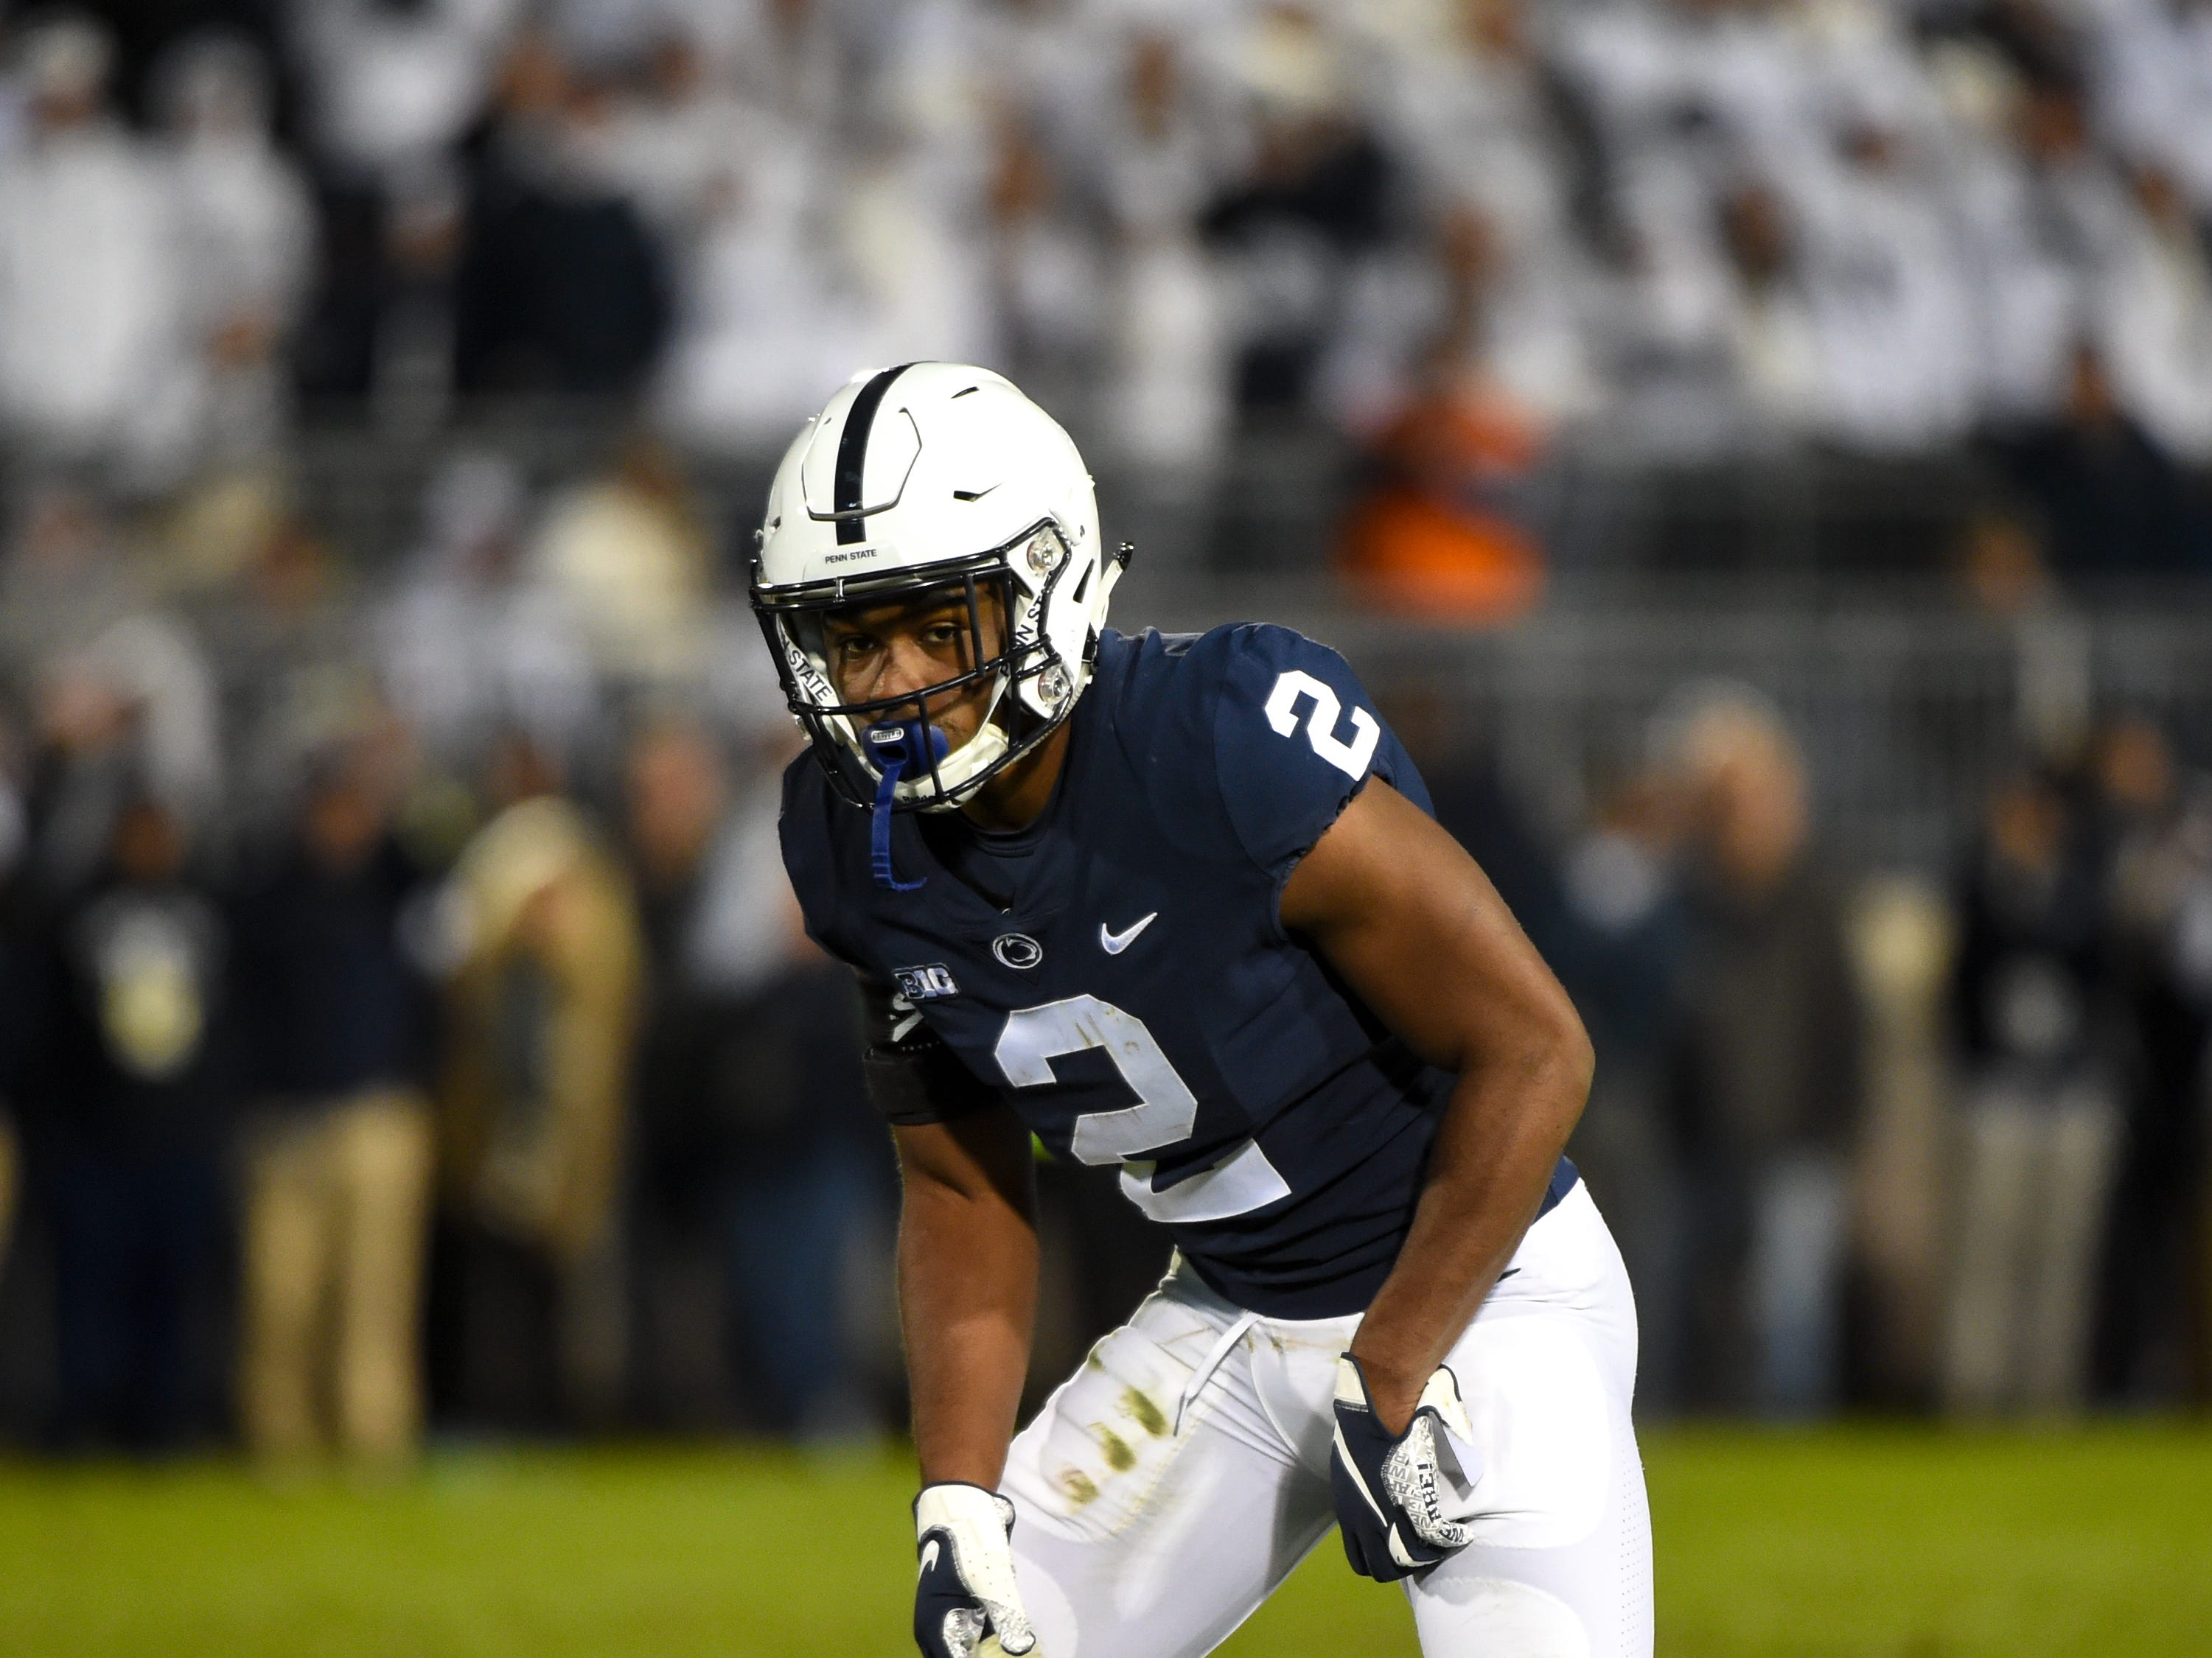 Donovan Johnson (2) sets up at the line of scrimmage during the Penn State Homecoming game against Michigan State, October 13, 2018. The Nittany Lions fell to the Spartans 17-21.